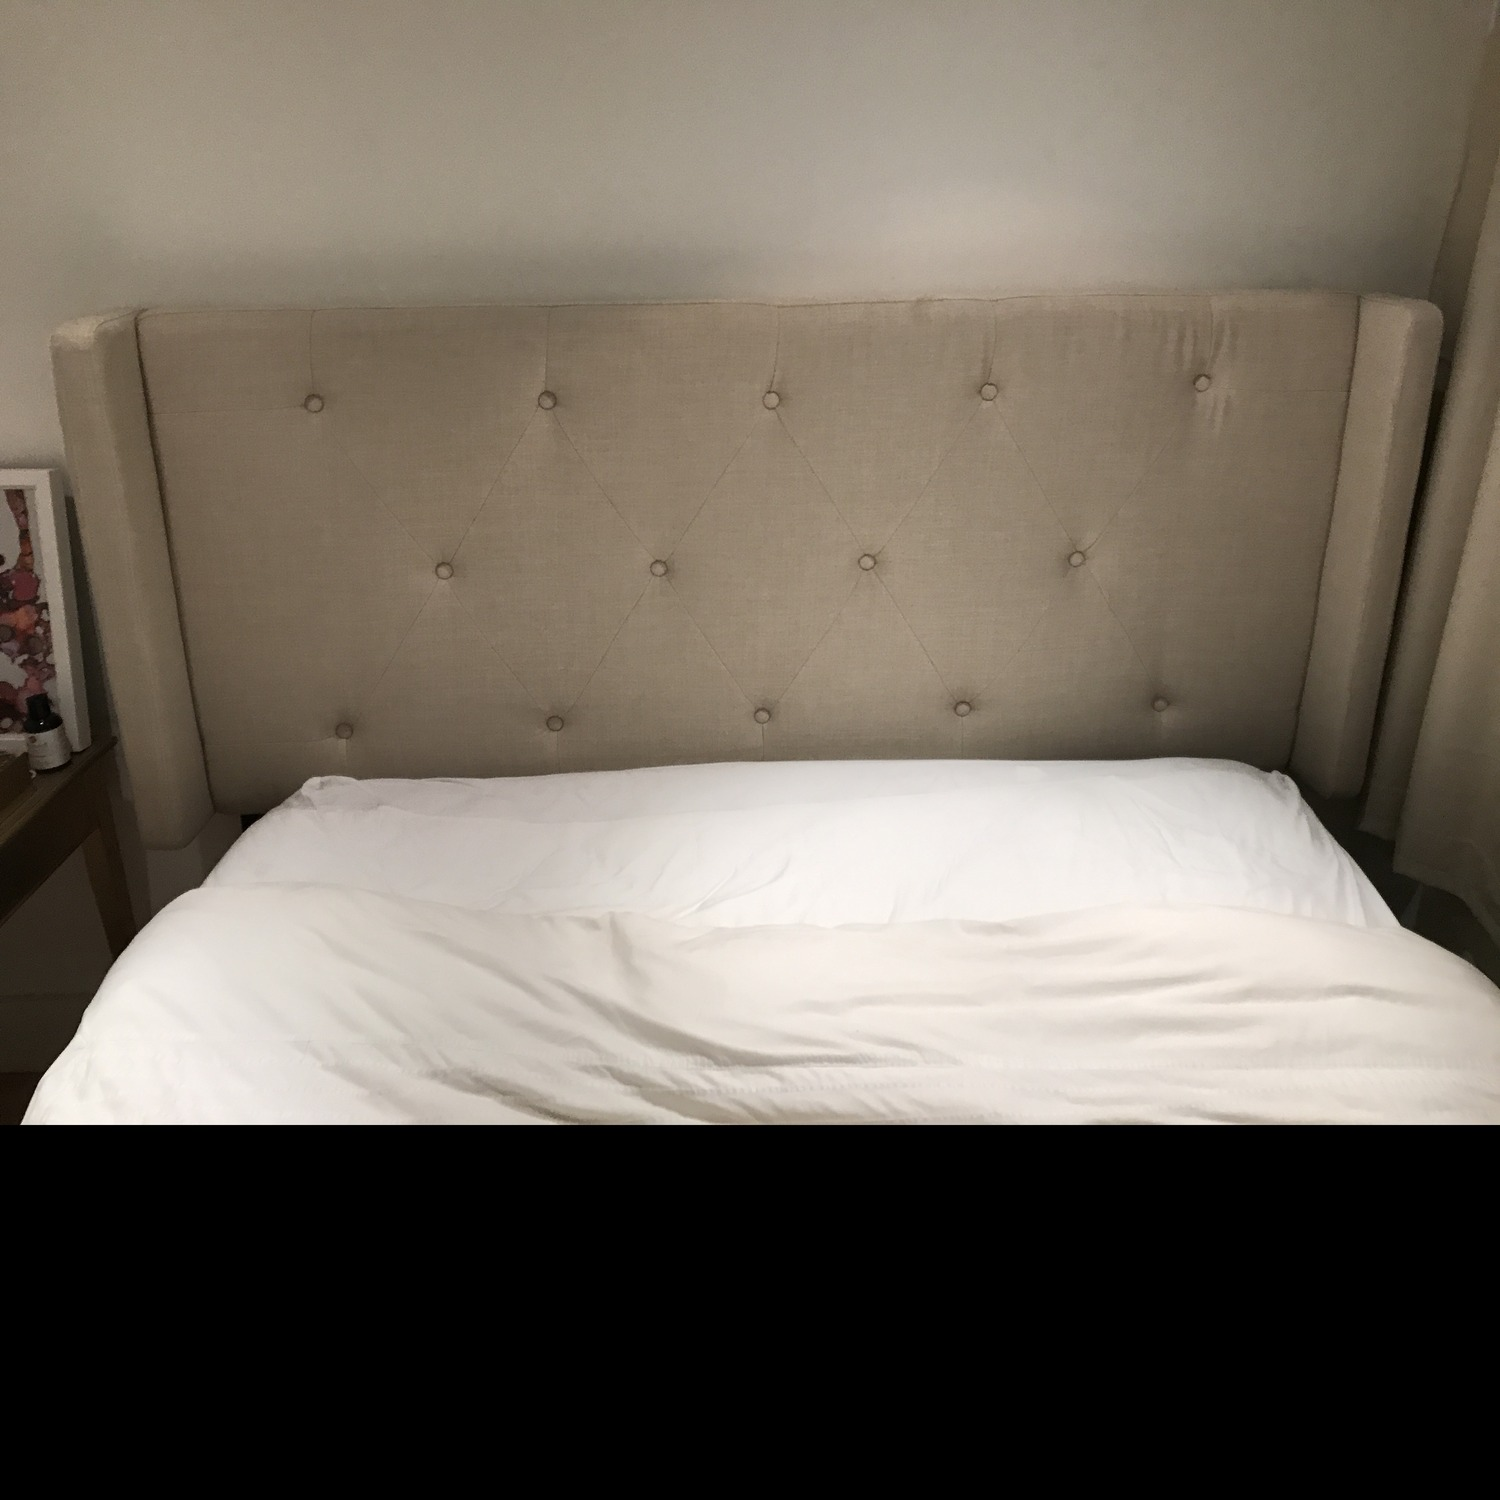 Wayfair Tufted Queen Linen Bed Frame w Attached Headboard - image-5